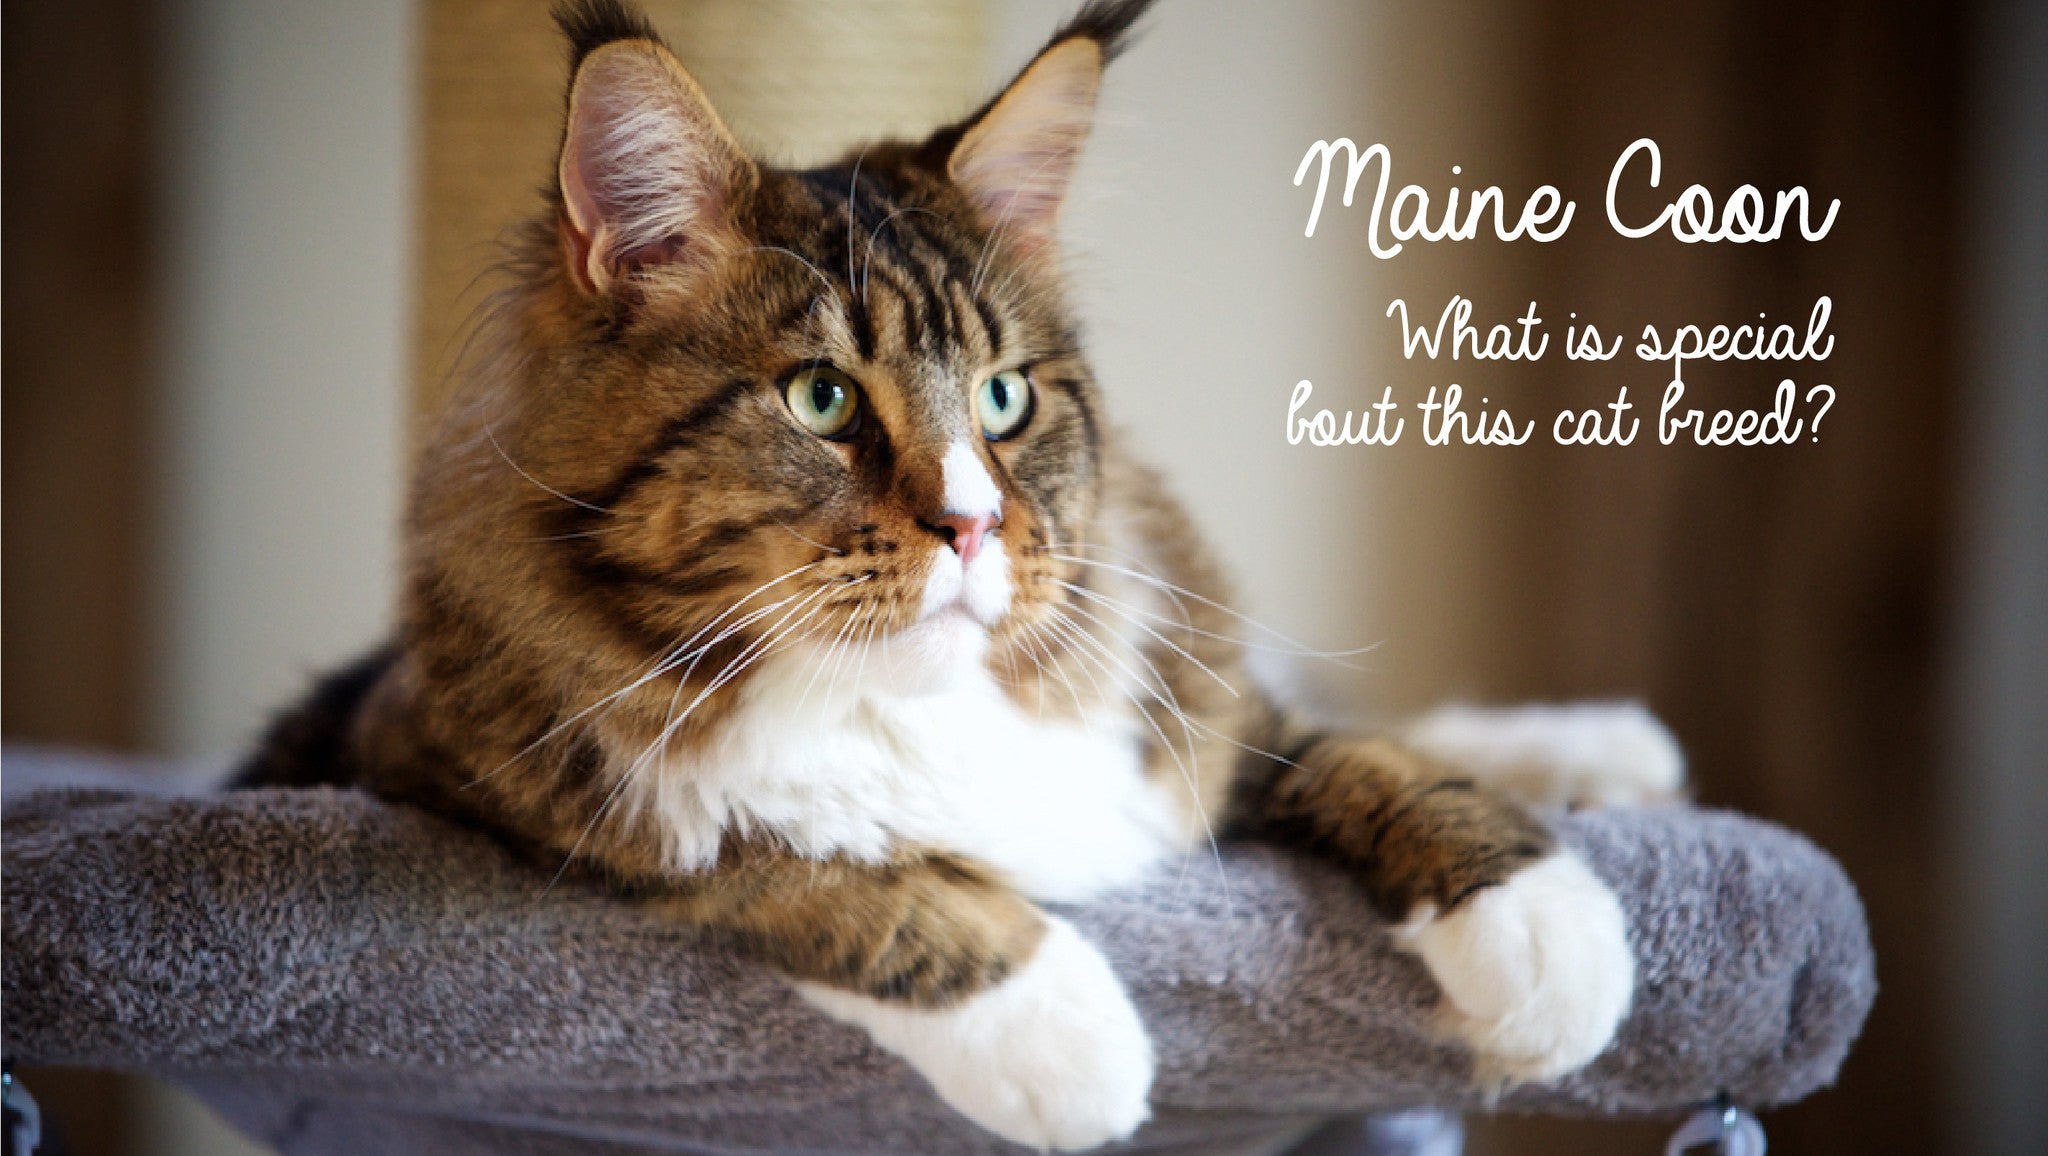 Maine Coon kittens and live with the giant cat breed UK Tigga